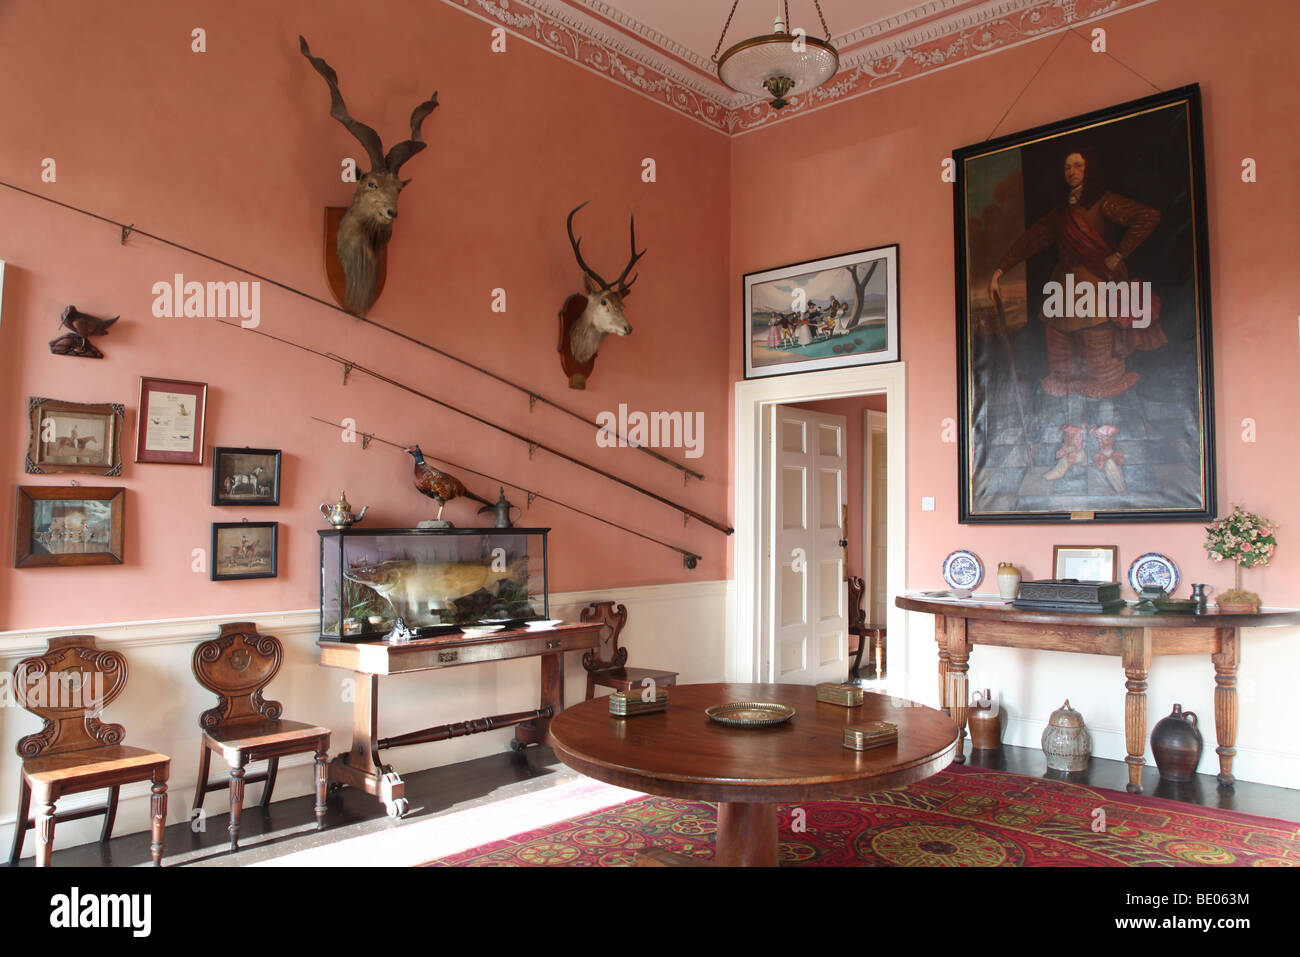 The hall of Enniscoe House, Irish stately home owned by Susan Kellett - Stock Image